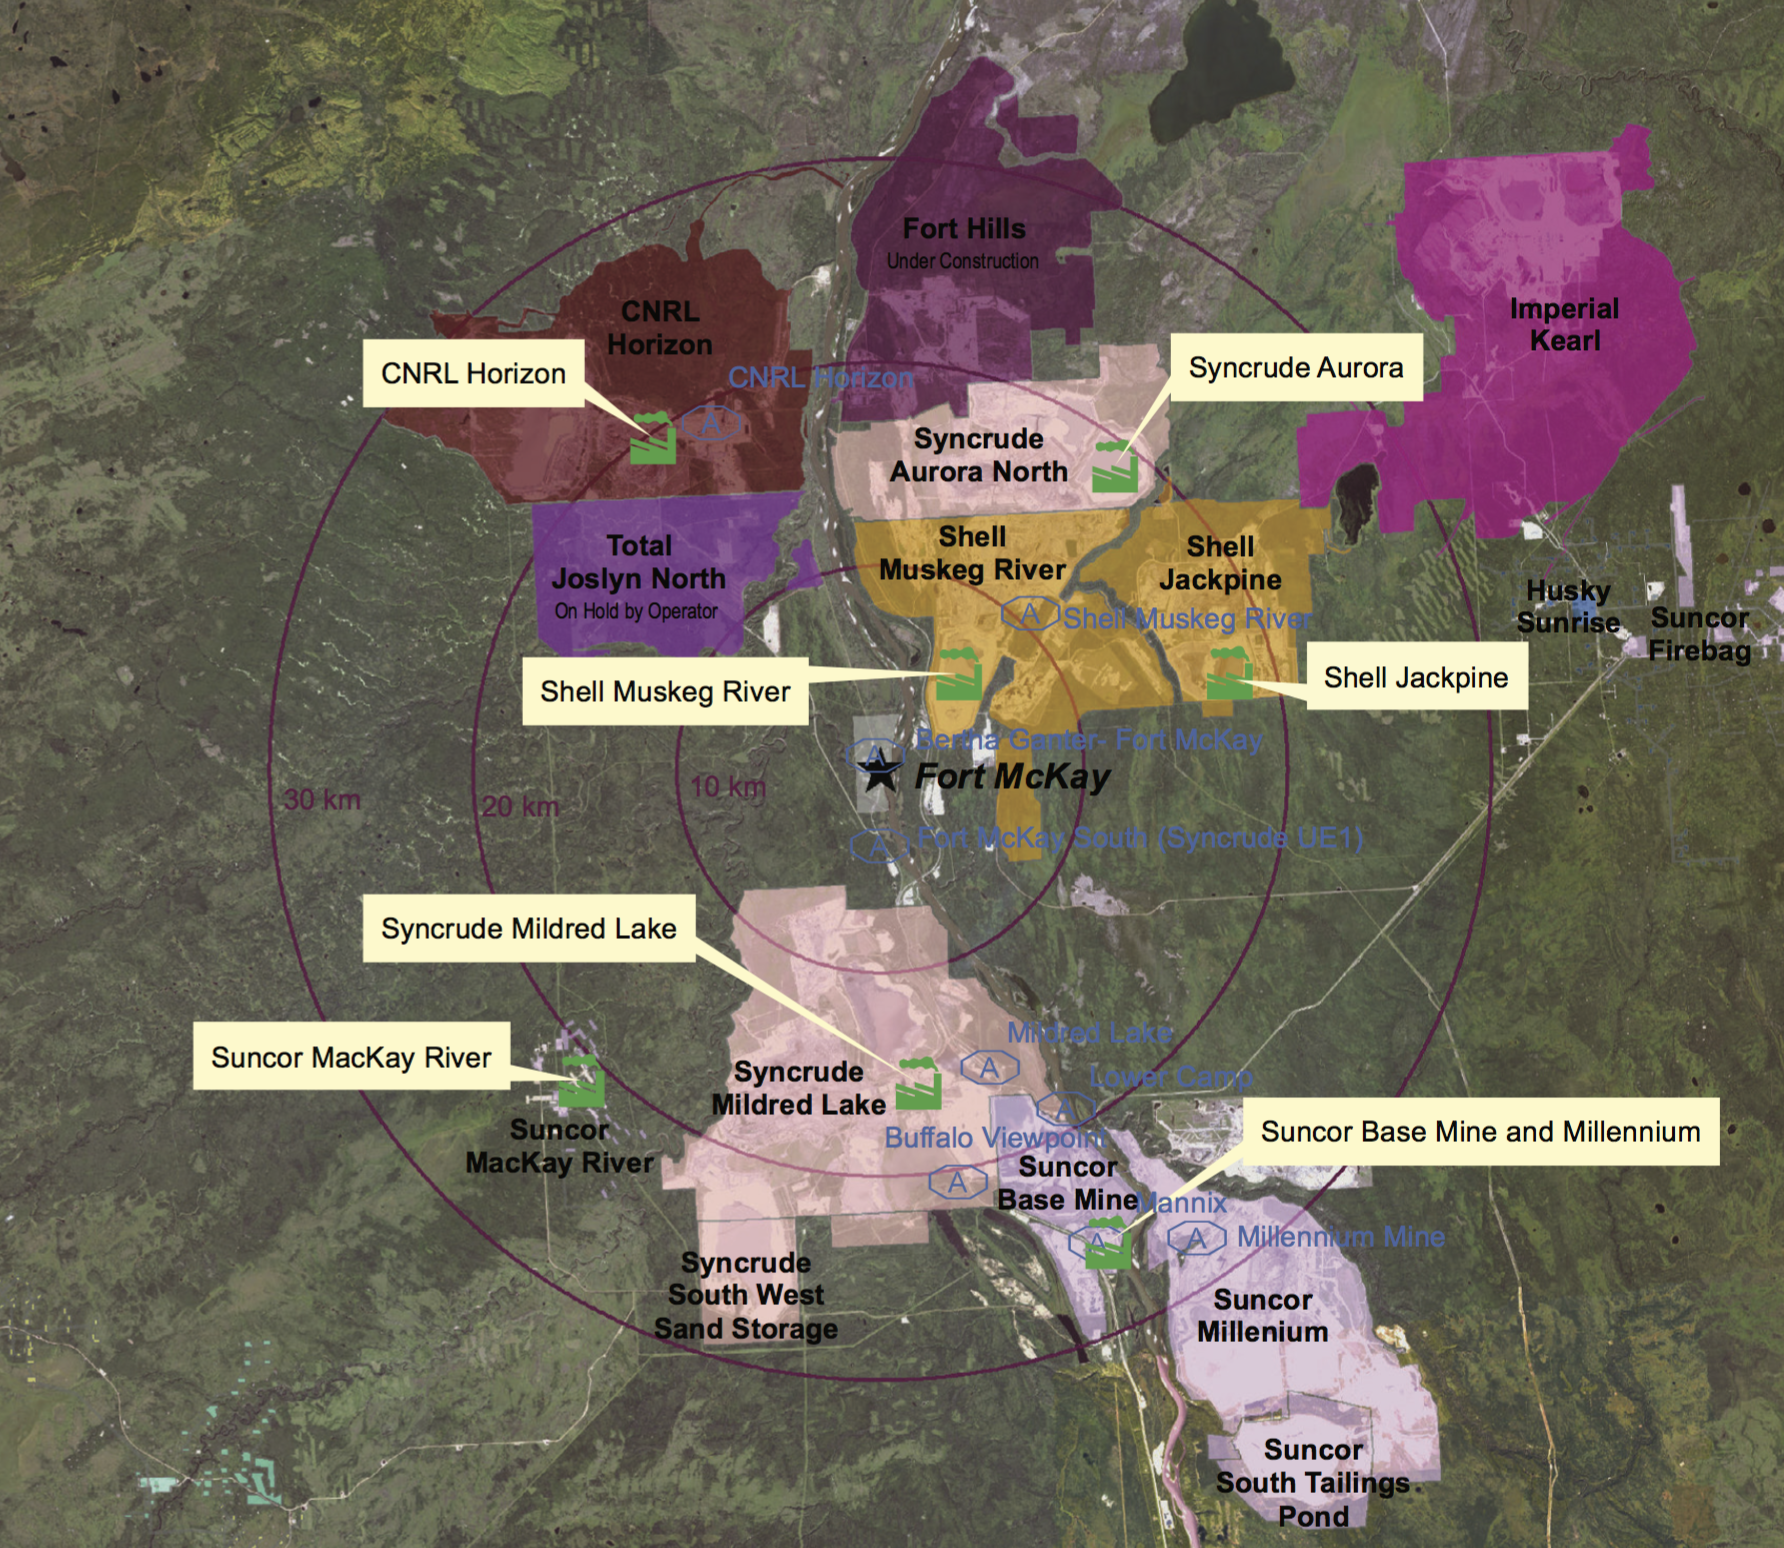 OIL SANDS OPERATIONS MAP (COURTESY AER)